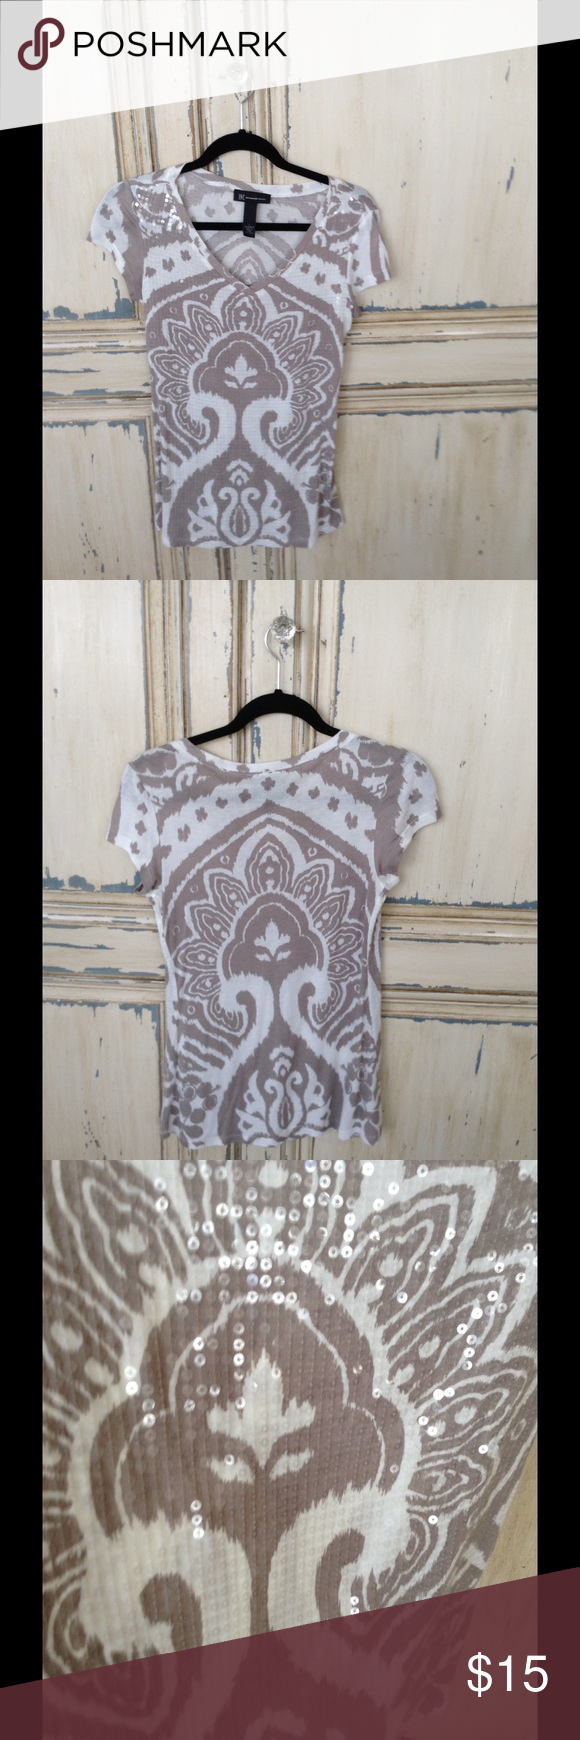 INC Top with sequins Inc taupe and white top, pullover stretchy with sequins on front. Size L but fits like a 4-6. INC International Concepts Tops